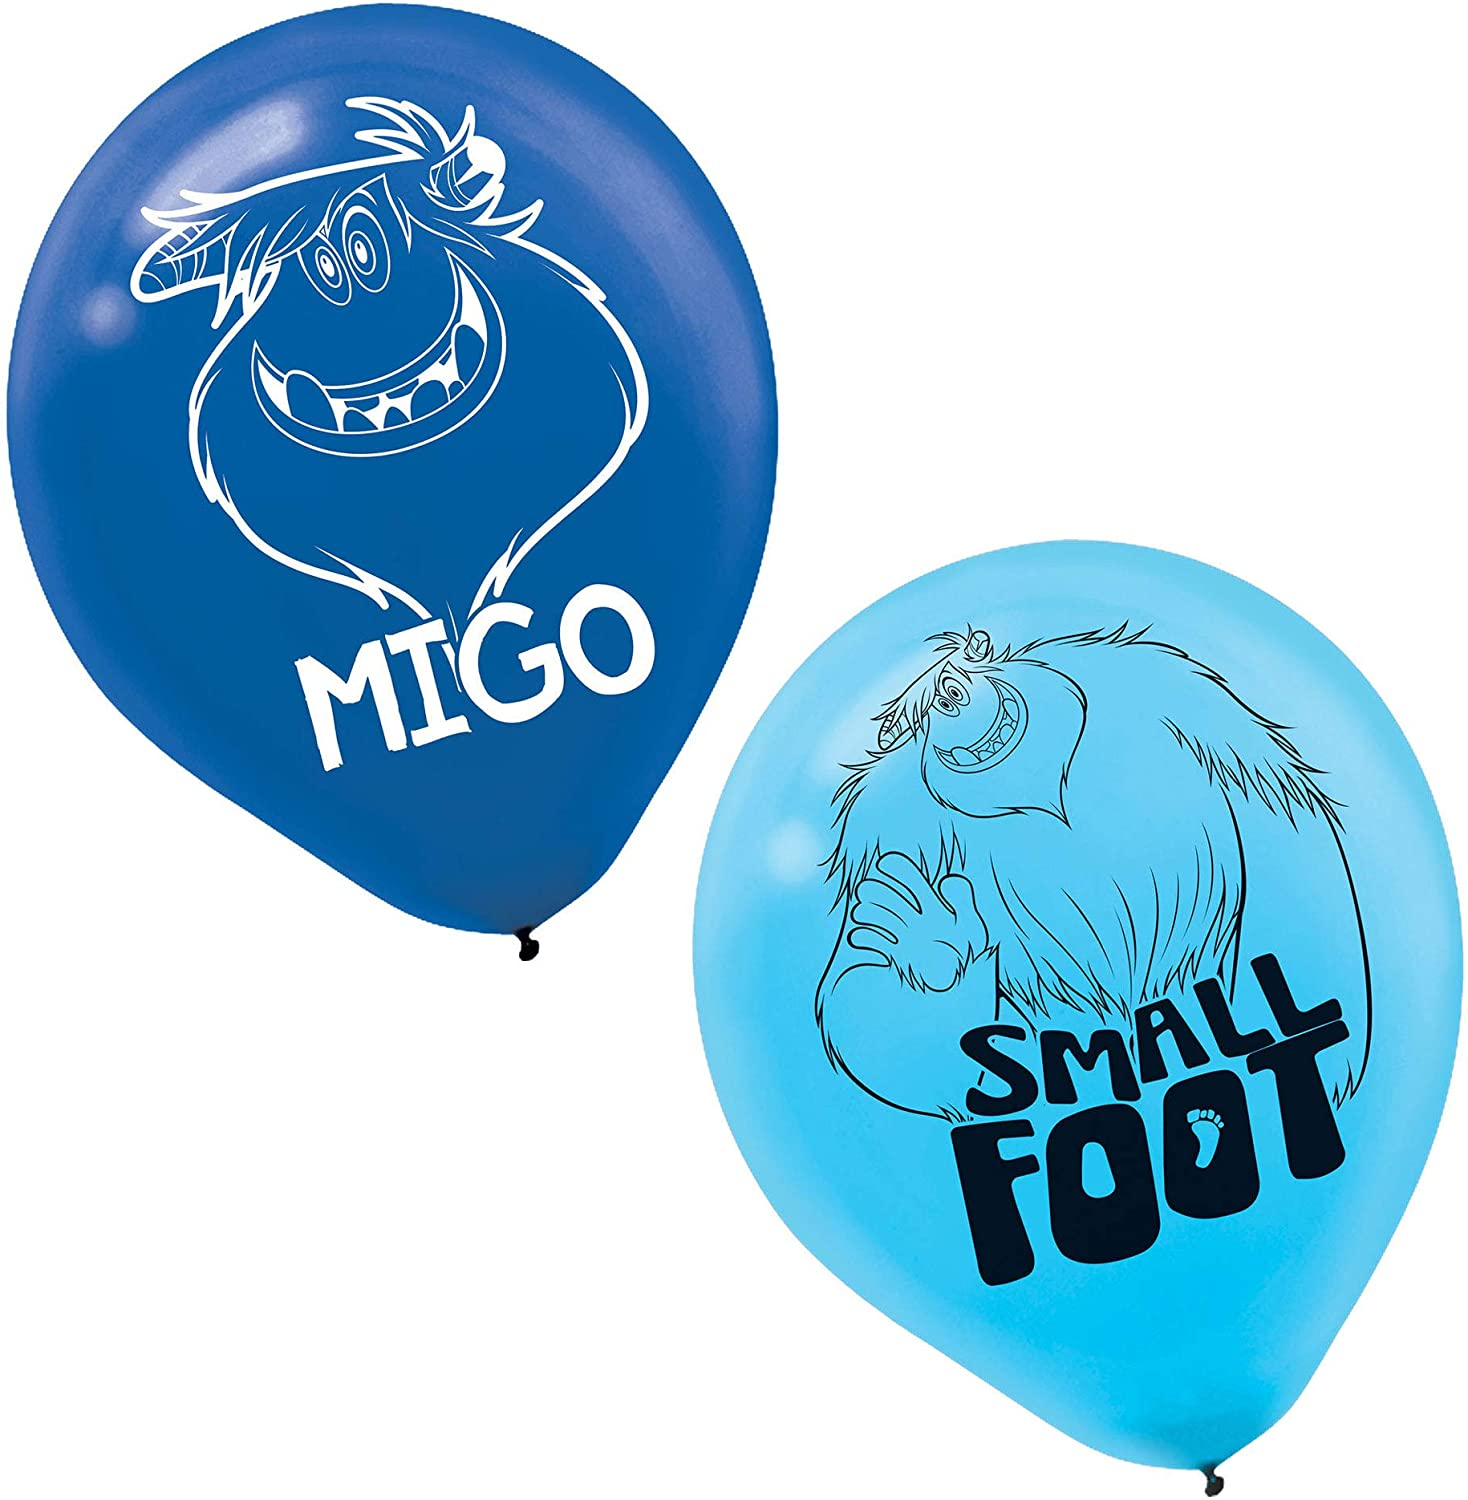 SMALLFOOT Printed Latex Balloons - Asst. Colors - 6 in a package